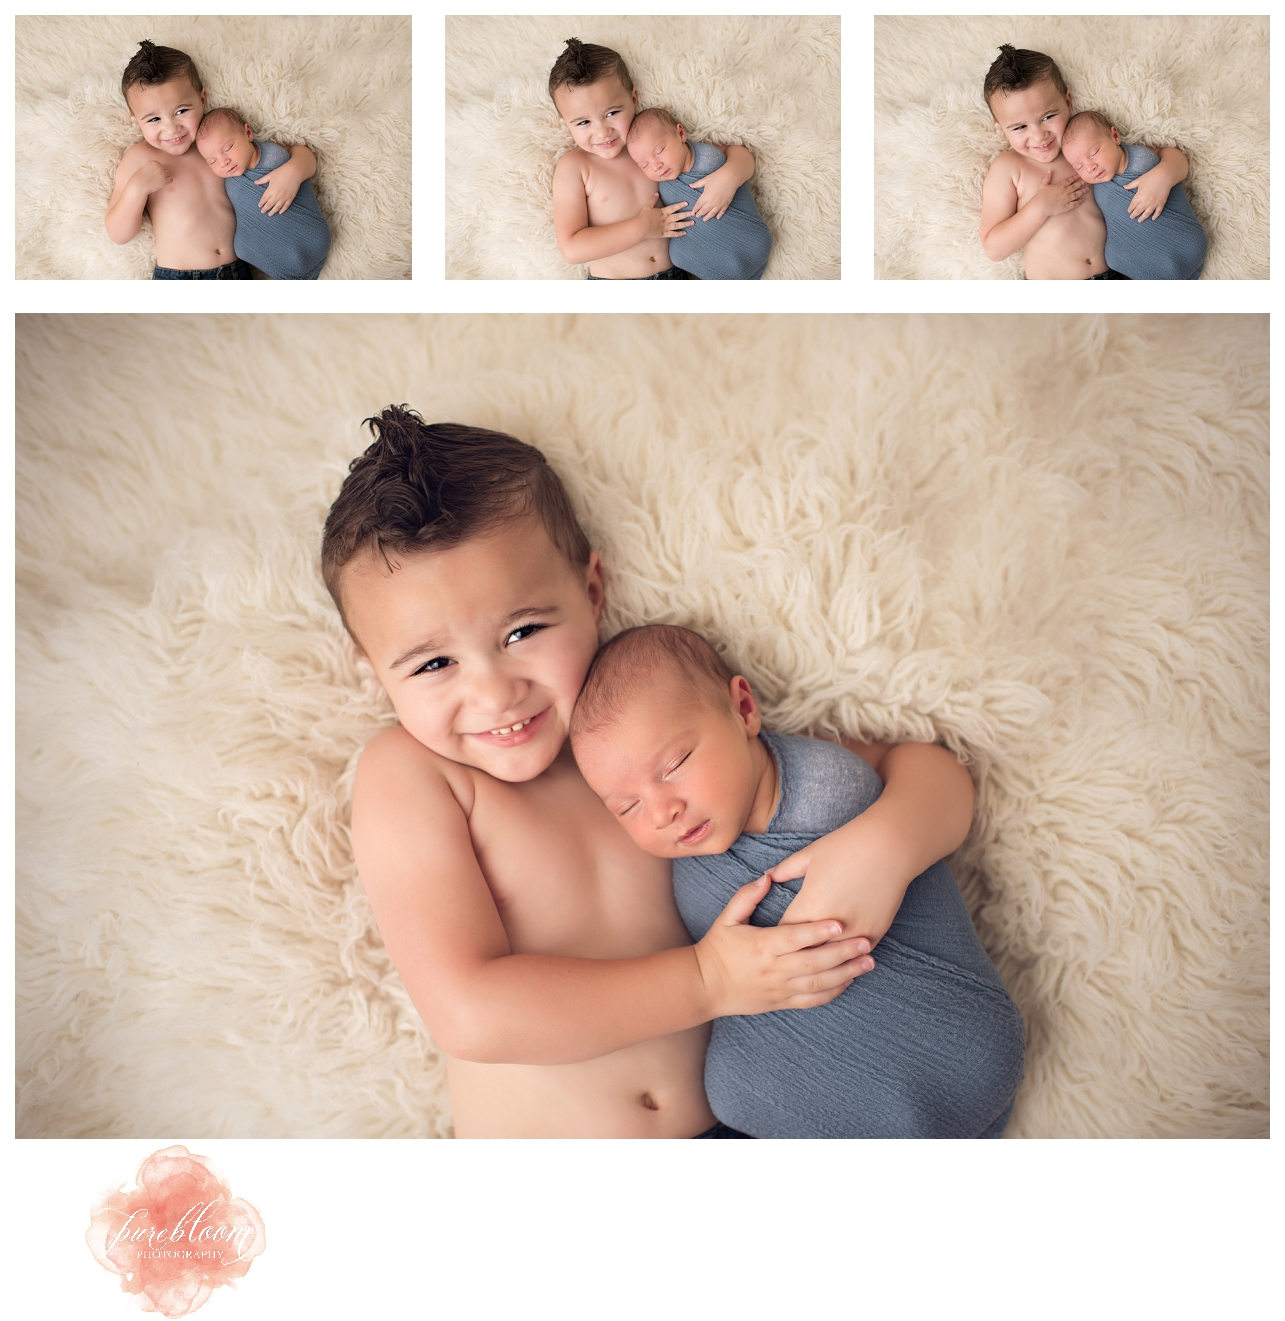 Tampa Artistic Newborn Photographer | Baby Benjamin | Pure Bloom Photography